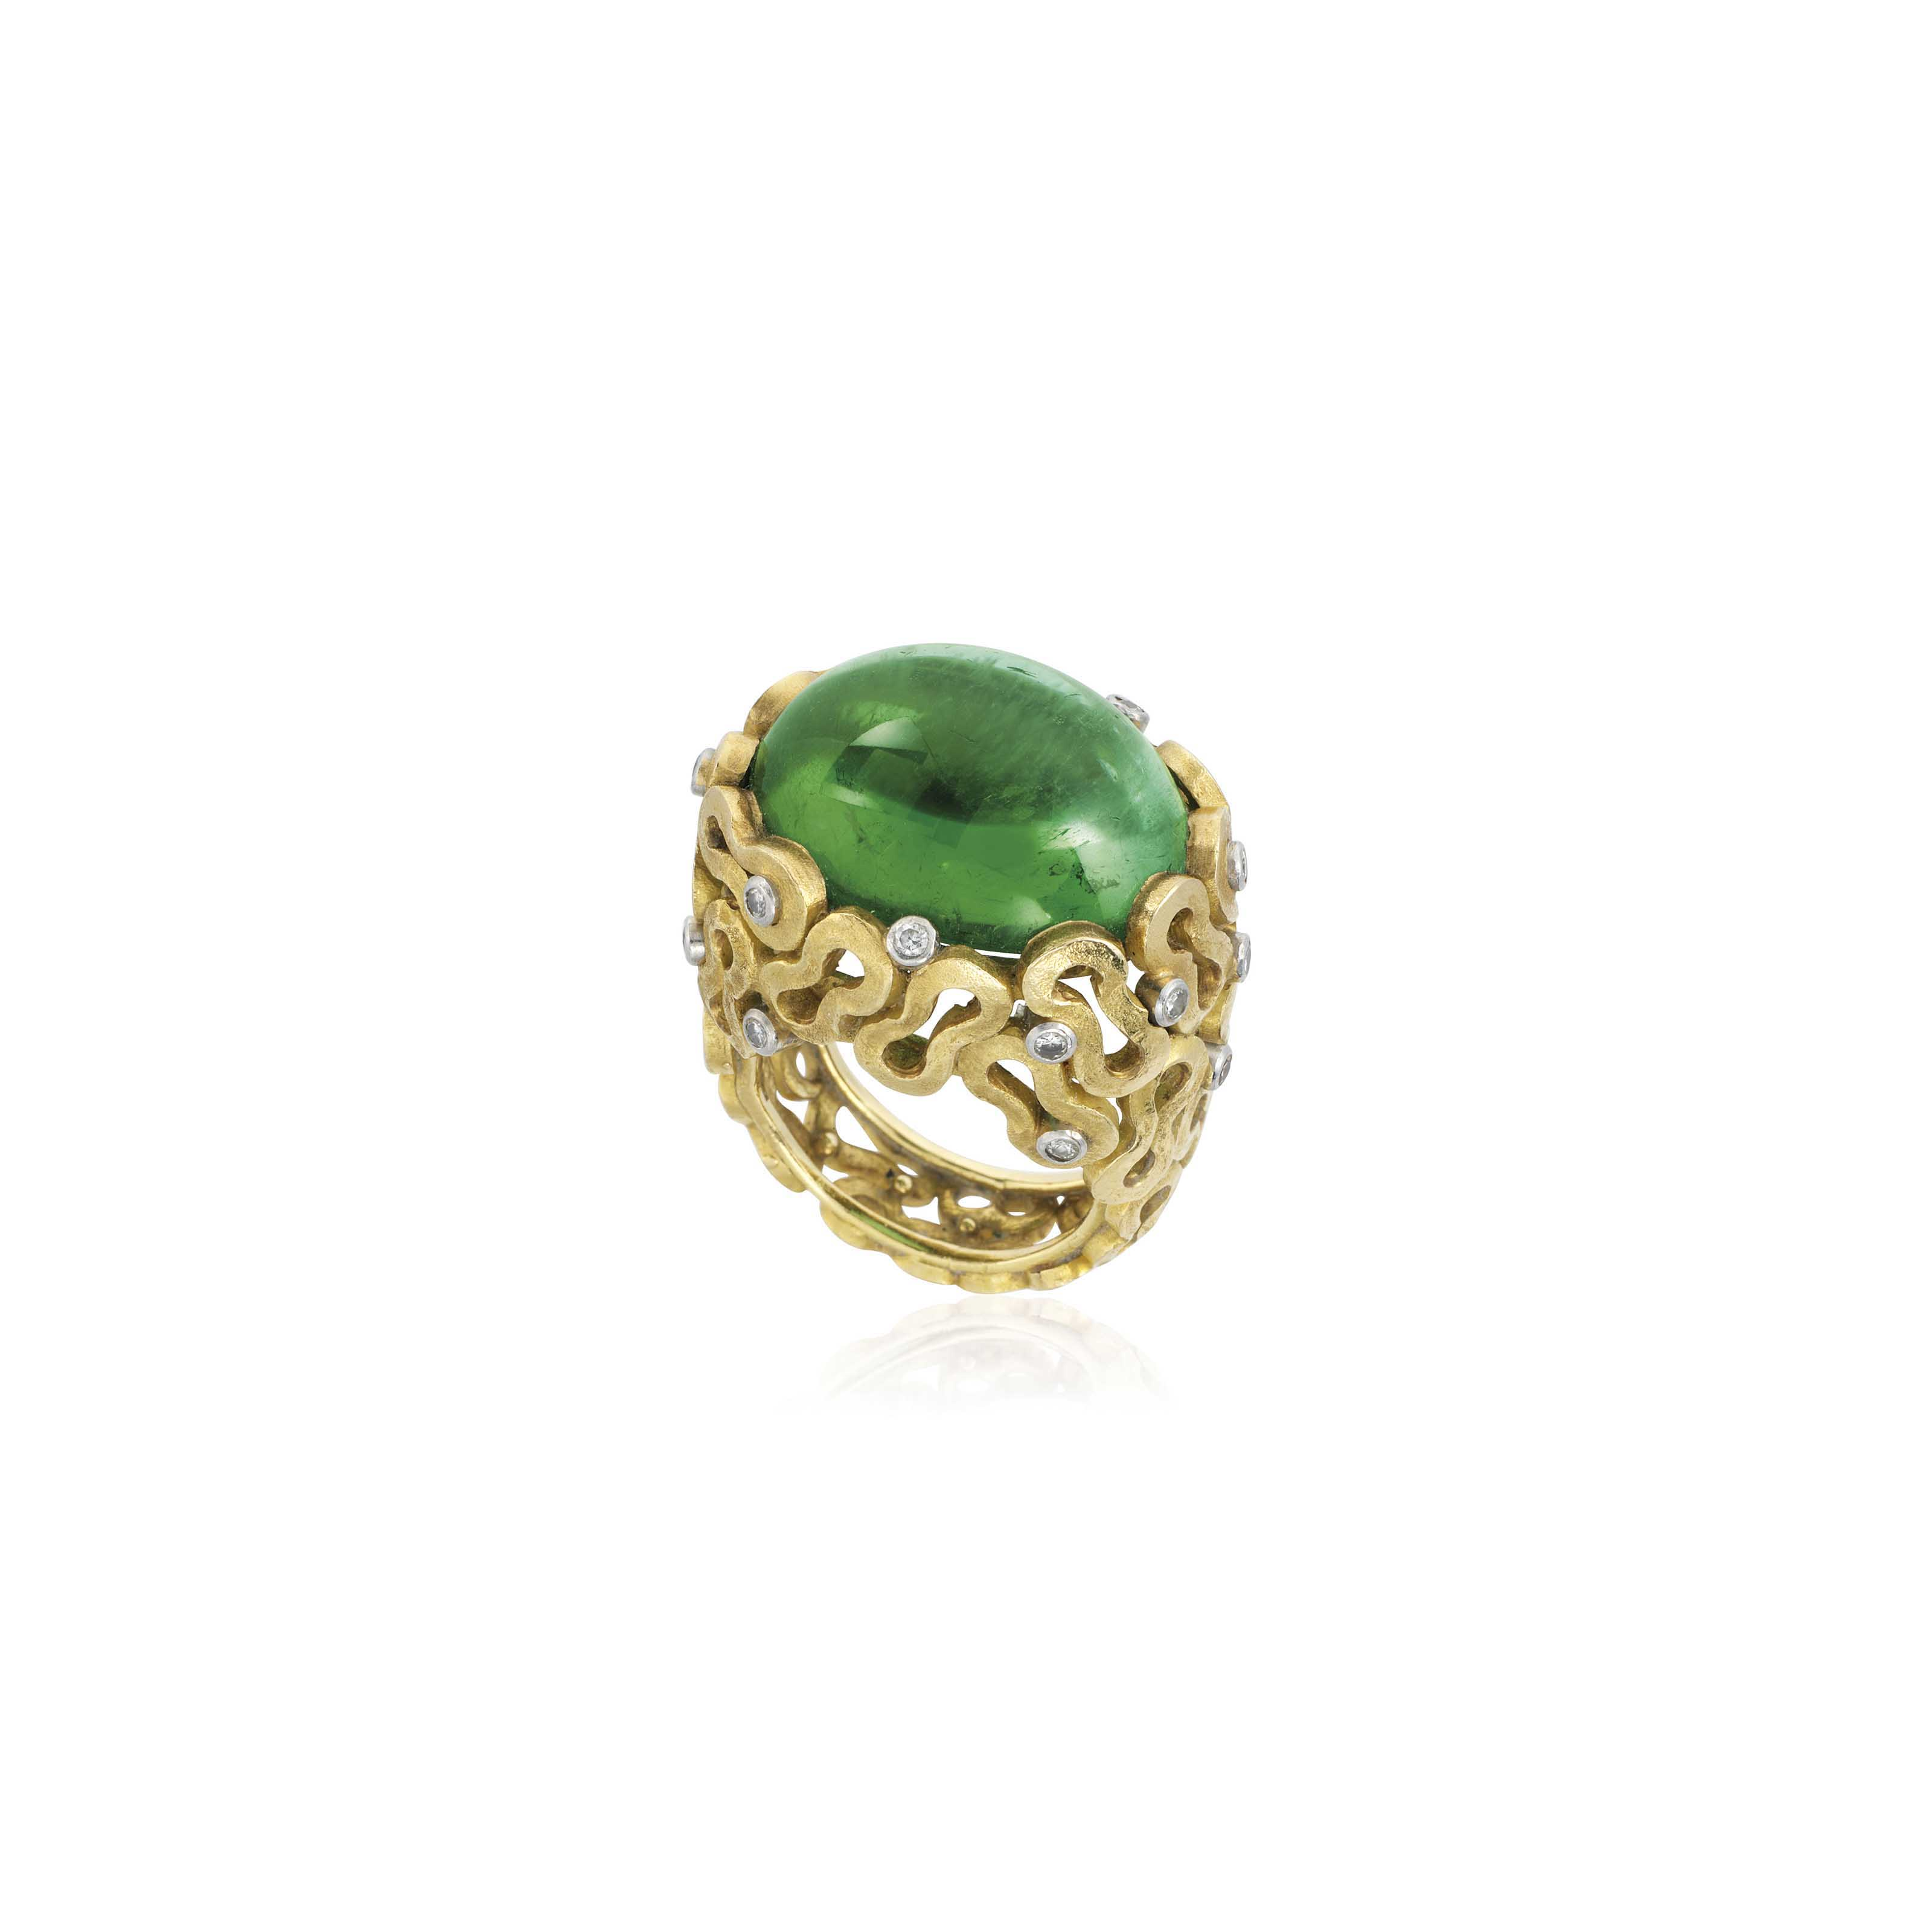 AN 18CT GOLD, TOURMALINE AND DIAMOND RING, BY ANDREW GRIMA